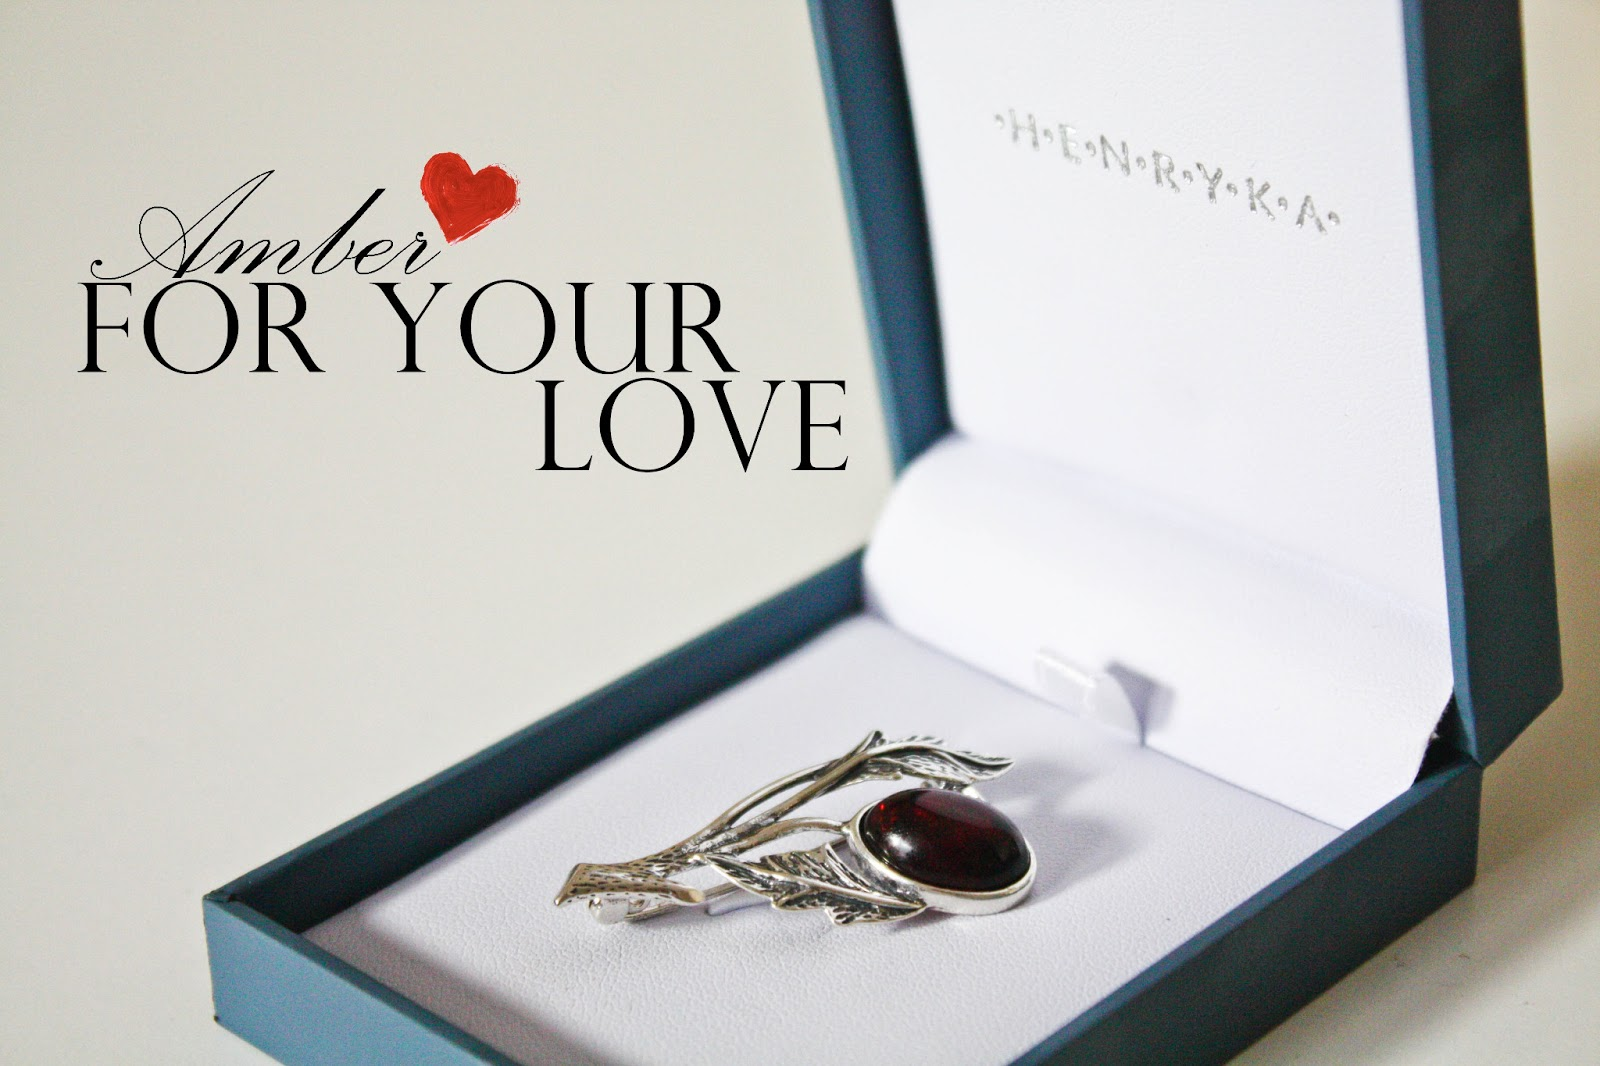 Gift idea for Valentine's Day: Amber Jewellery